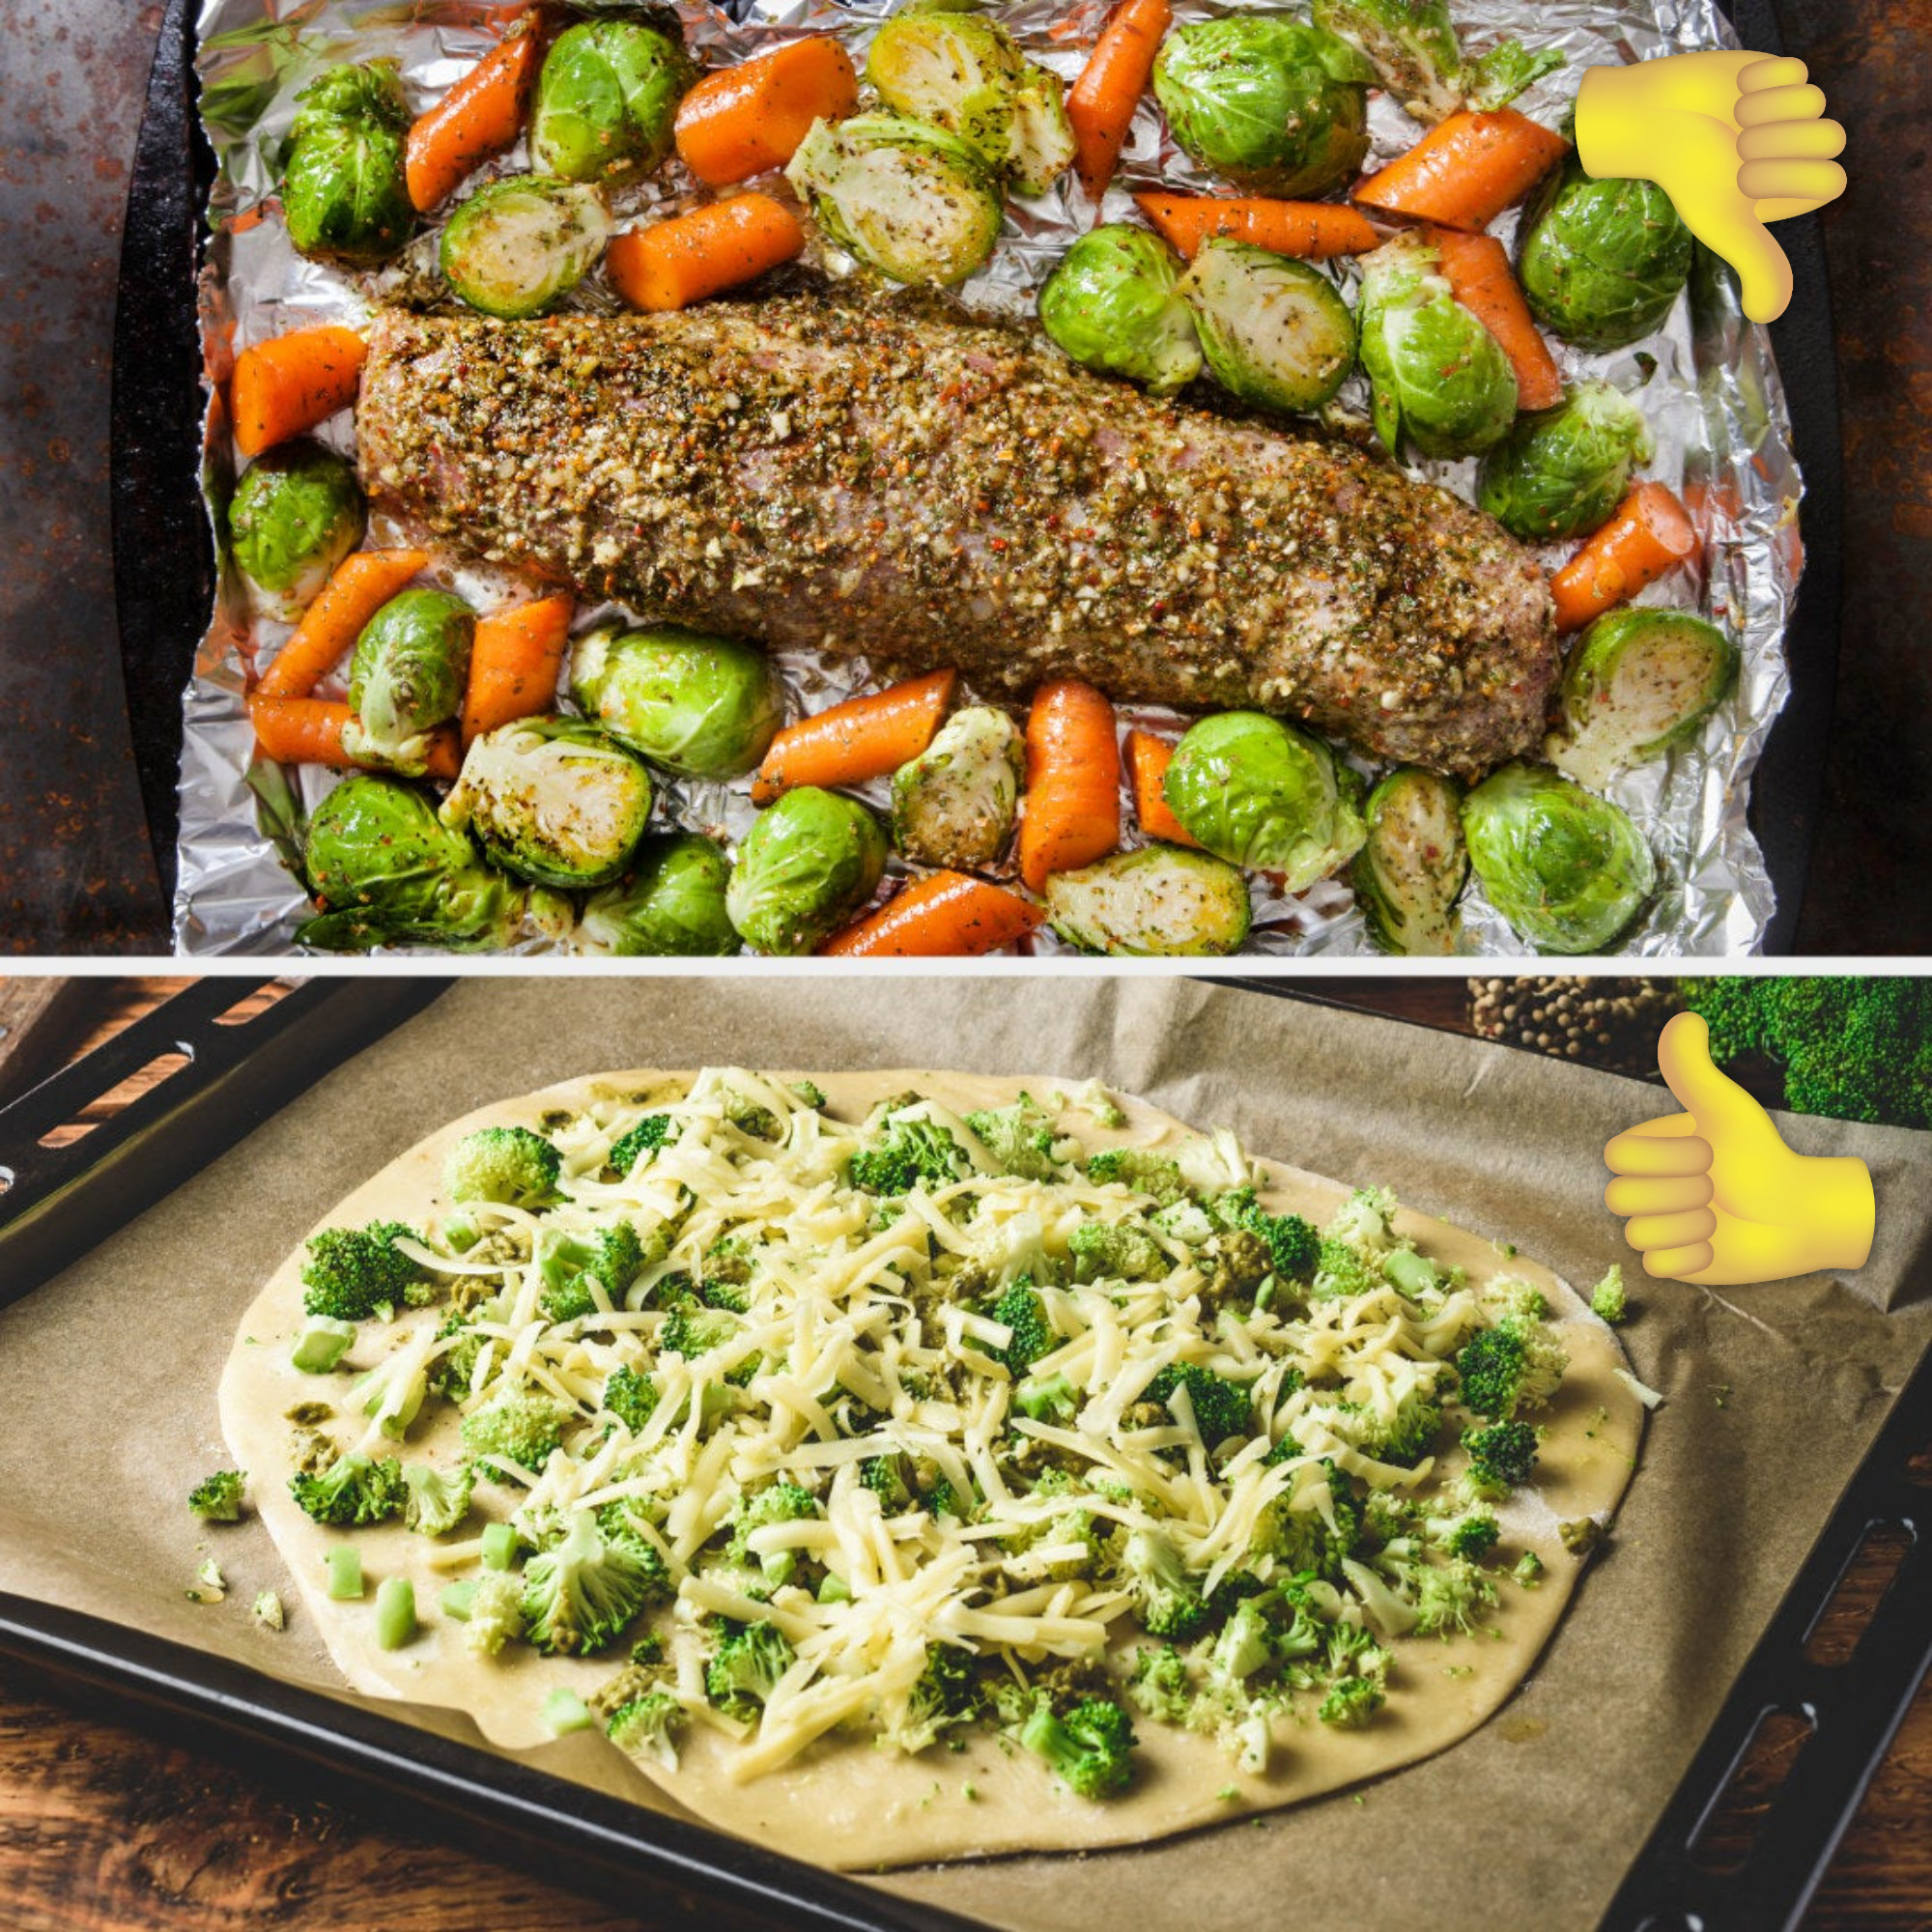 Raw garlic and herb pork with Brussels sprout and carrots on a baking sheet with tin foil; raw pizza with cheese and broccoli on baking sheet with parchment paper